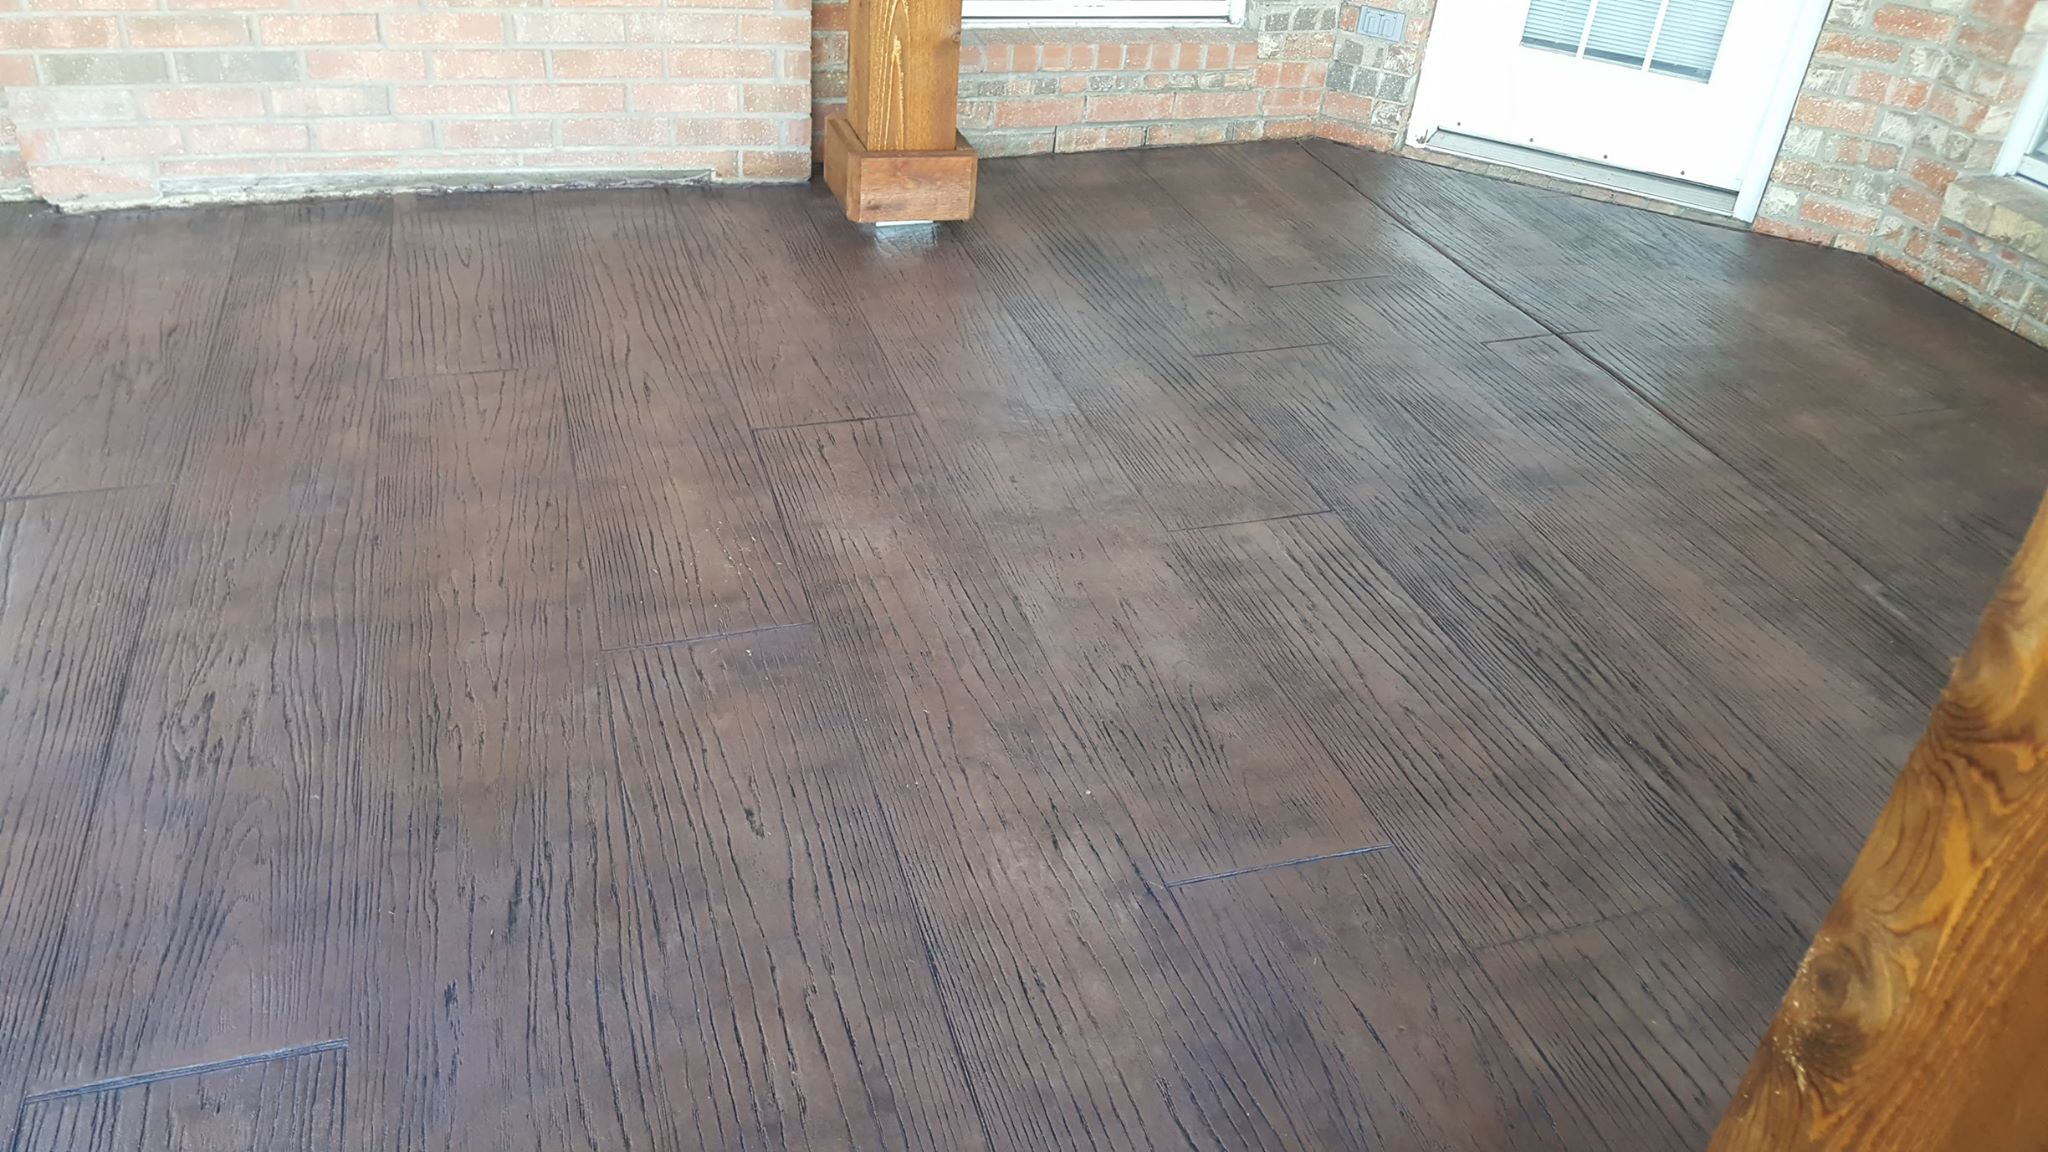 Wood stamped and stained concrete